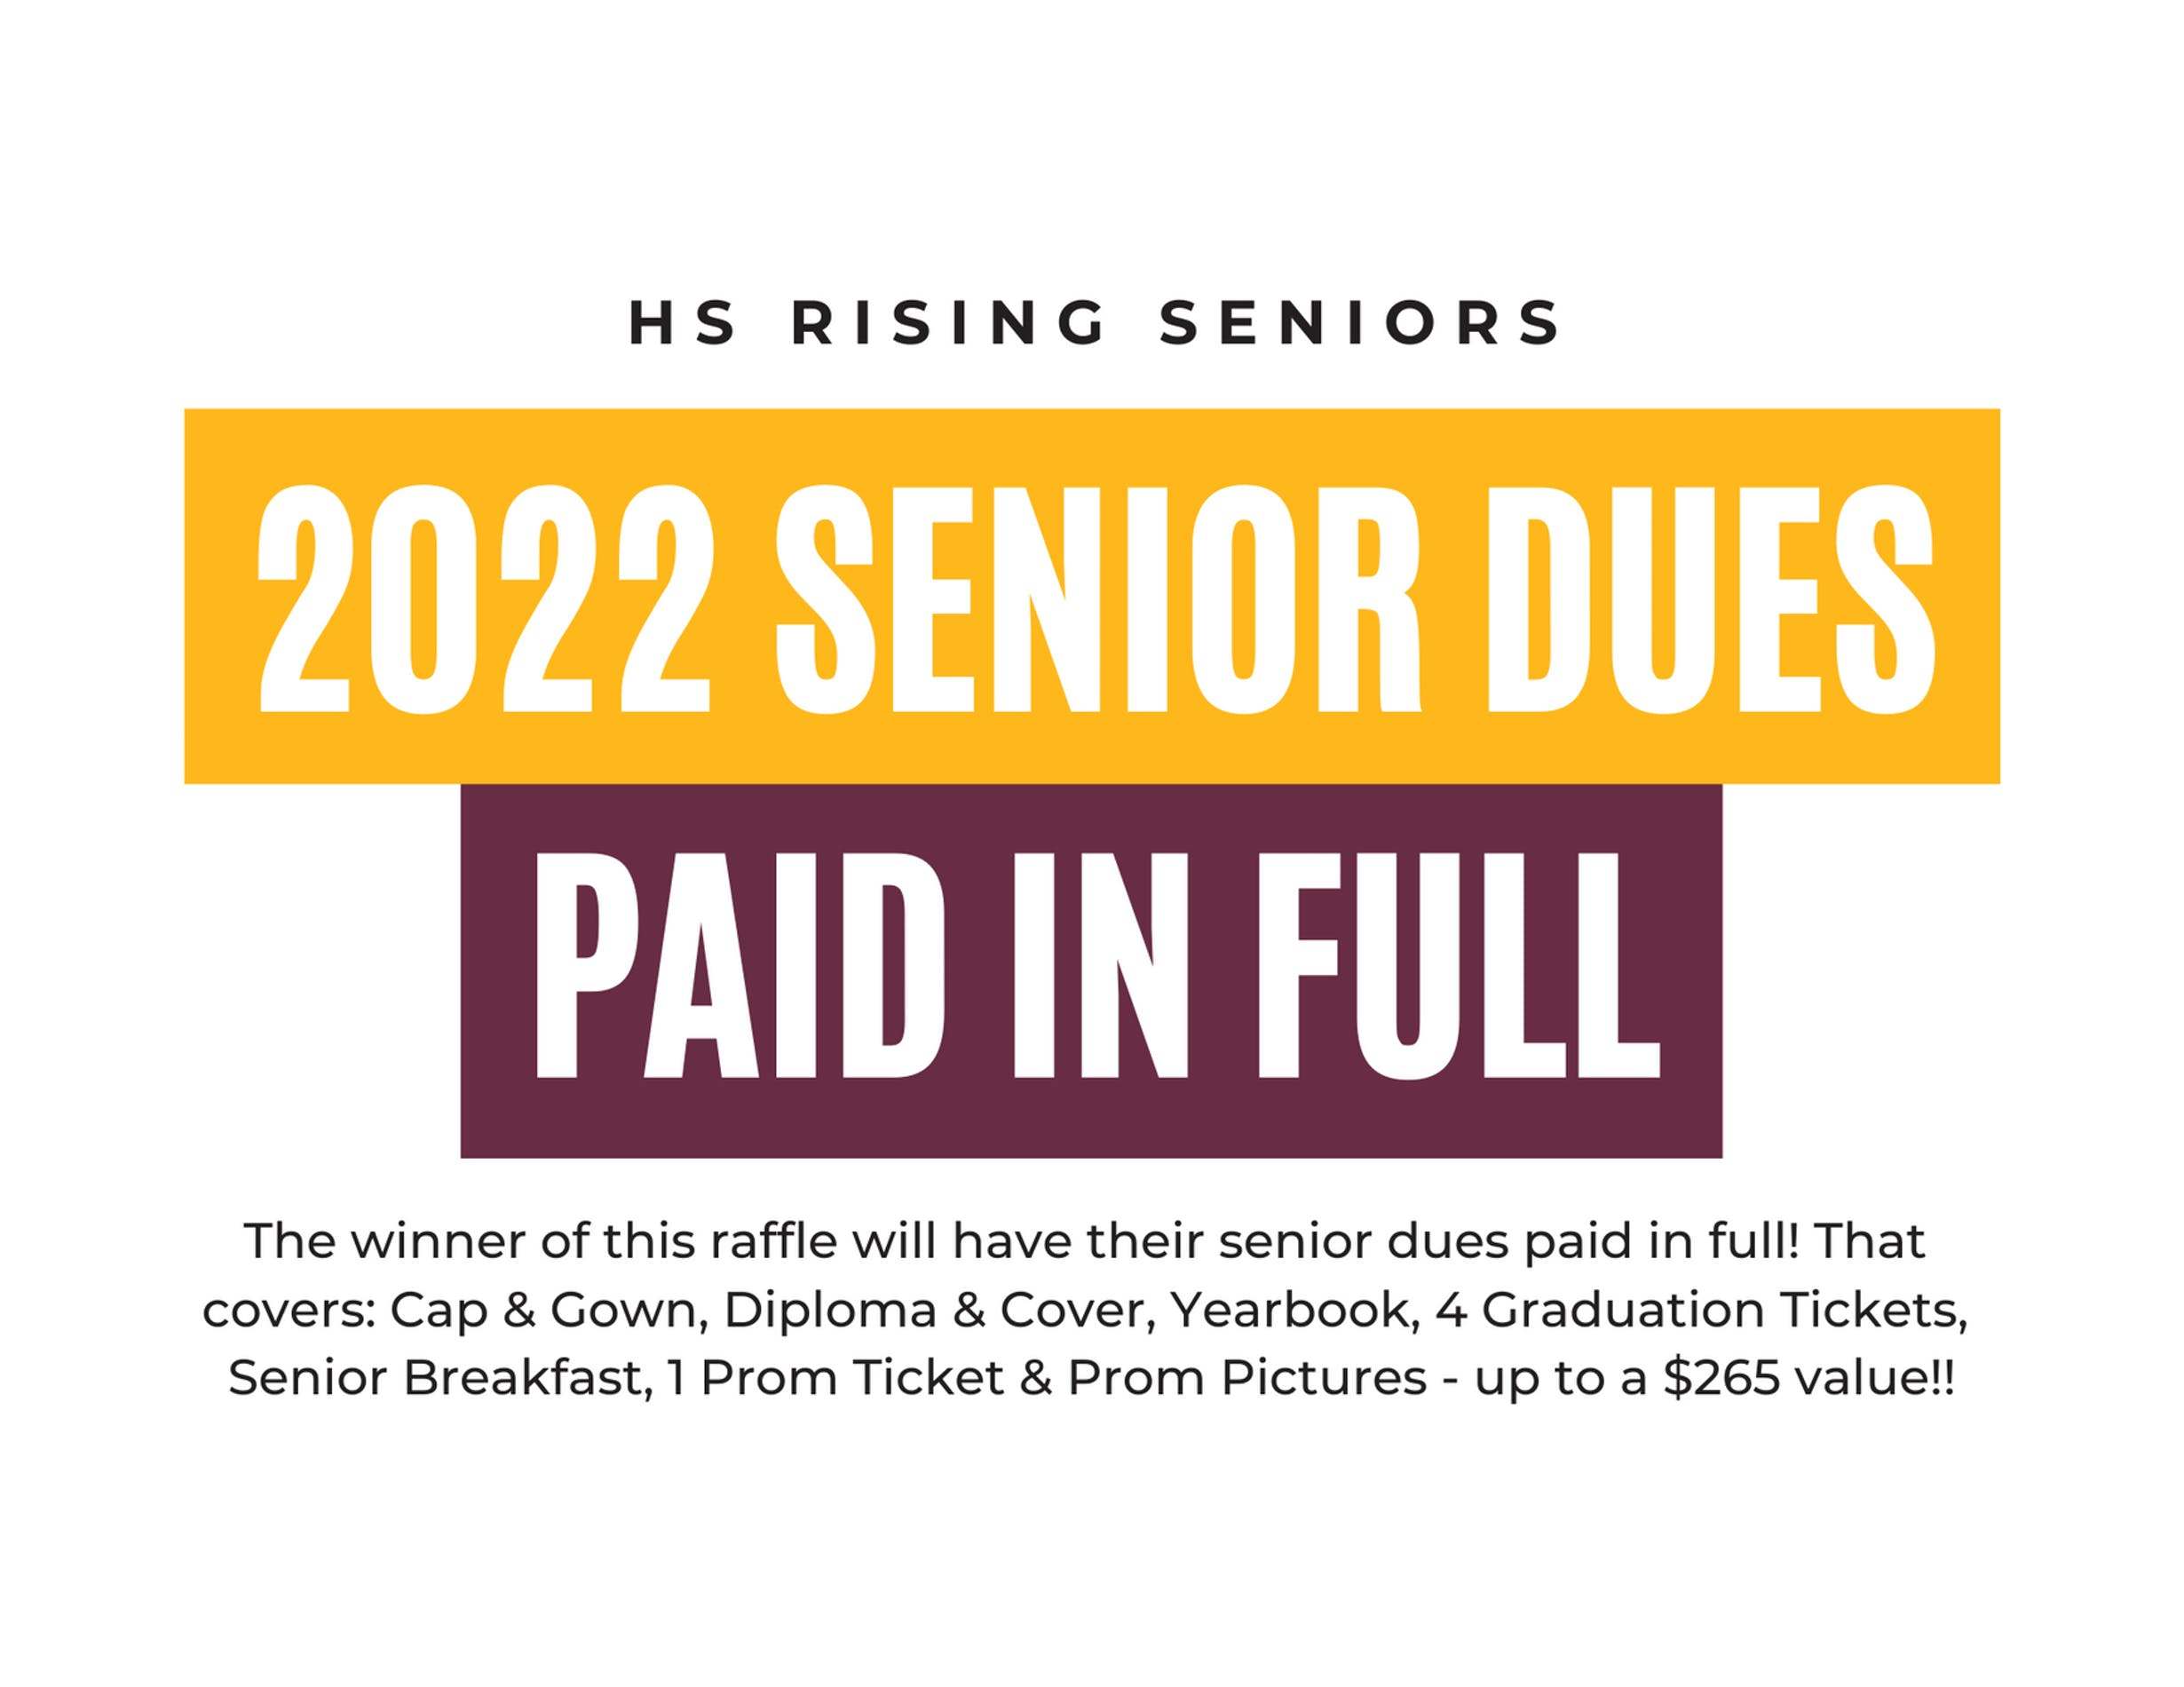 2022 Senior Dues Paid In Full Prize